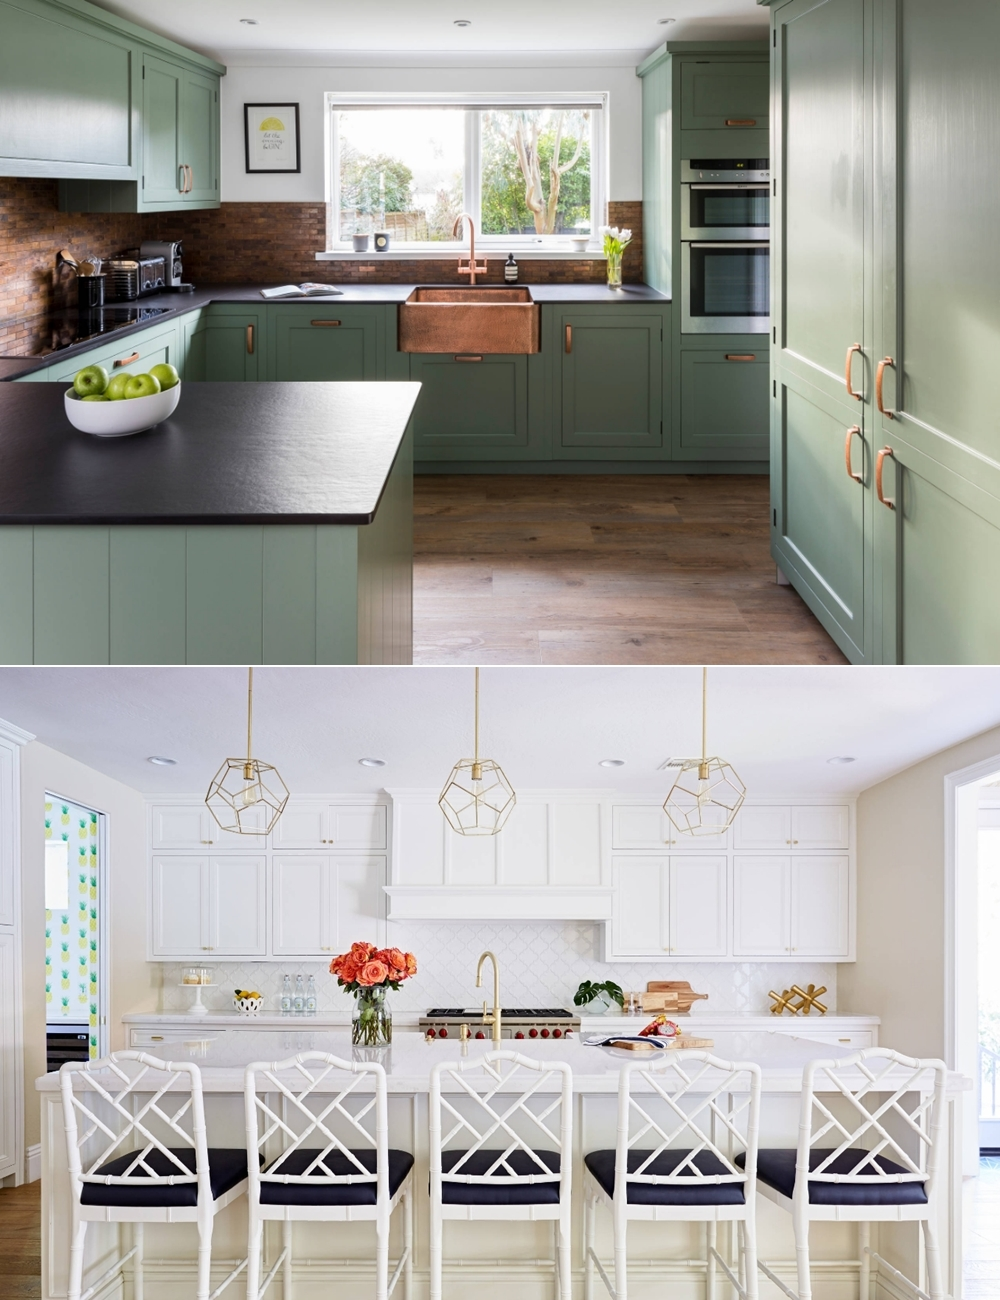 Home Design Trends in The Year 2019